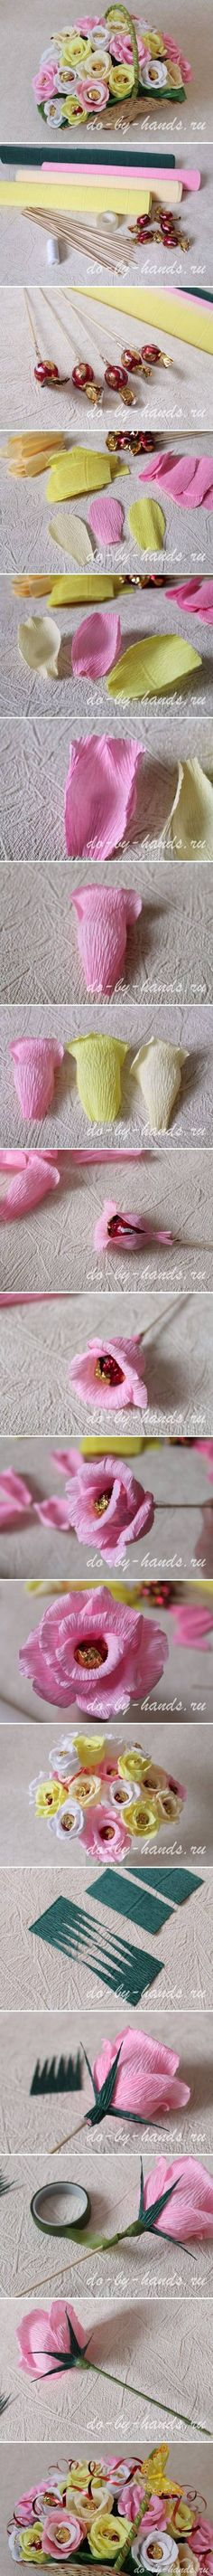 DIY Paper Roses with Candy.... chocolate bouquet like this would be awesome